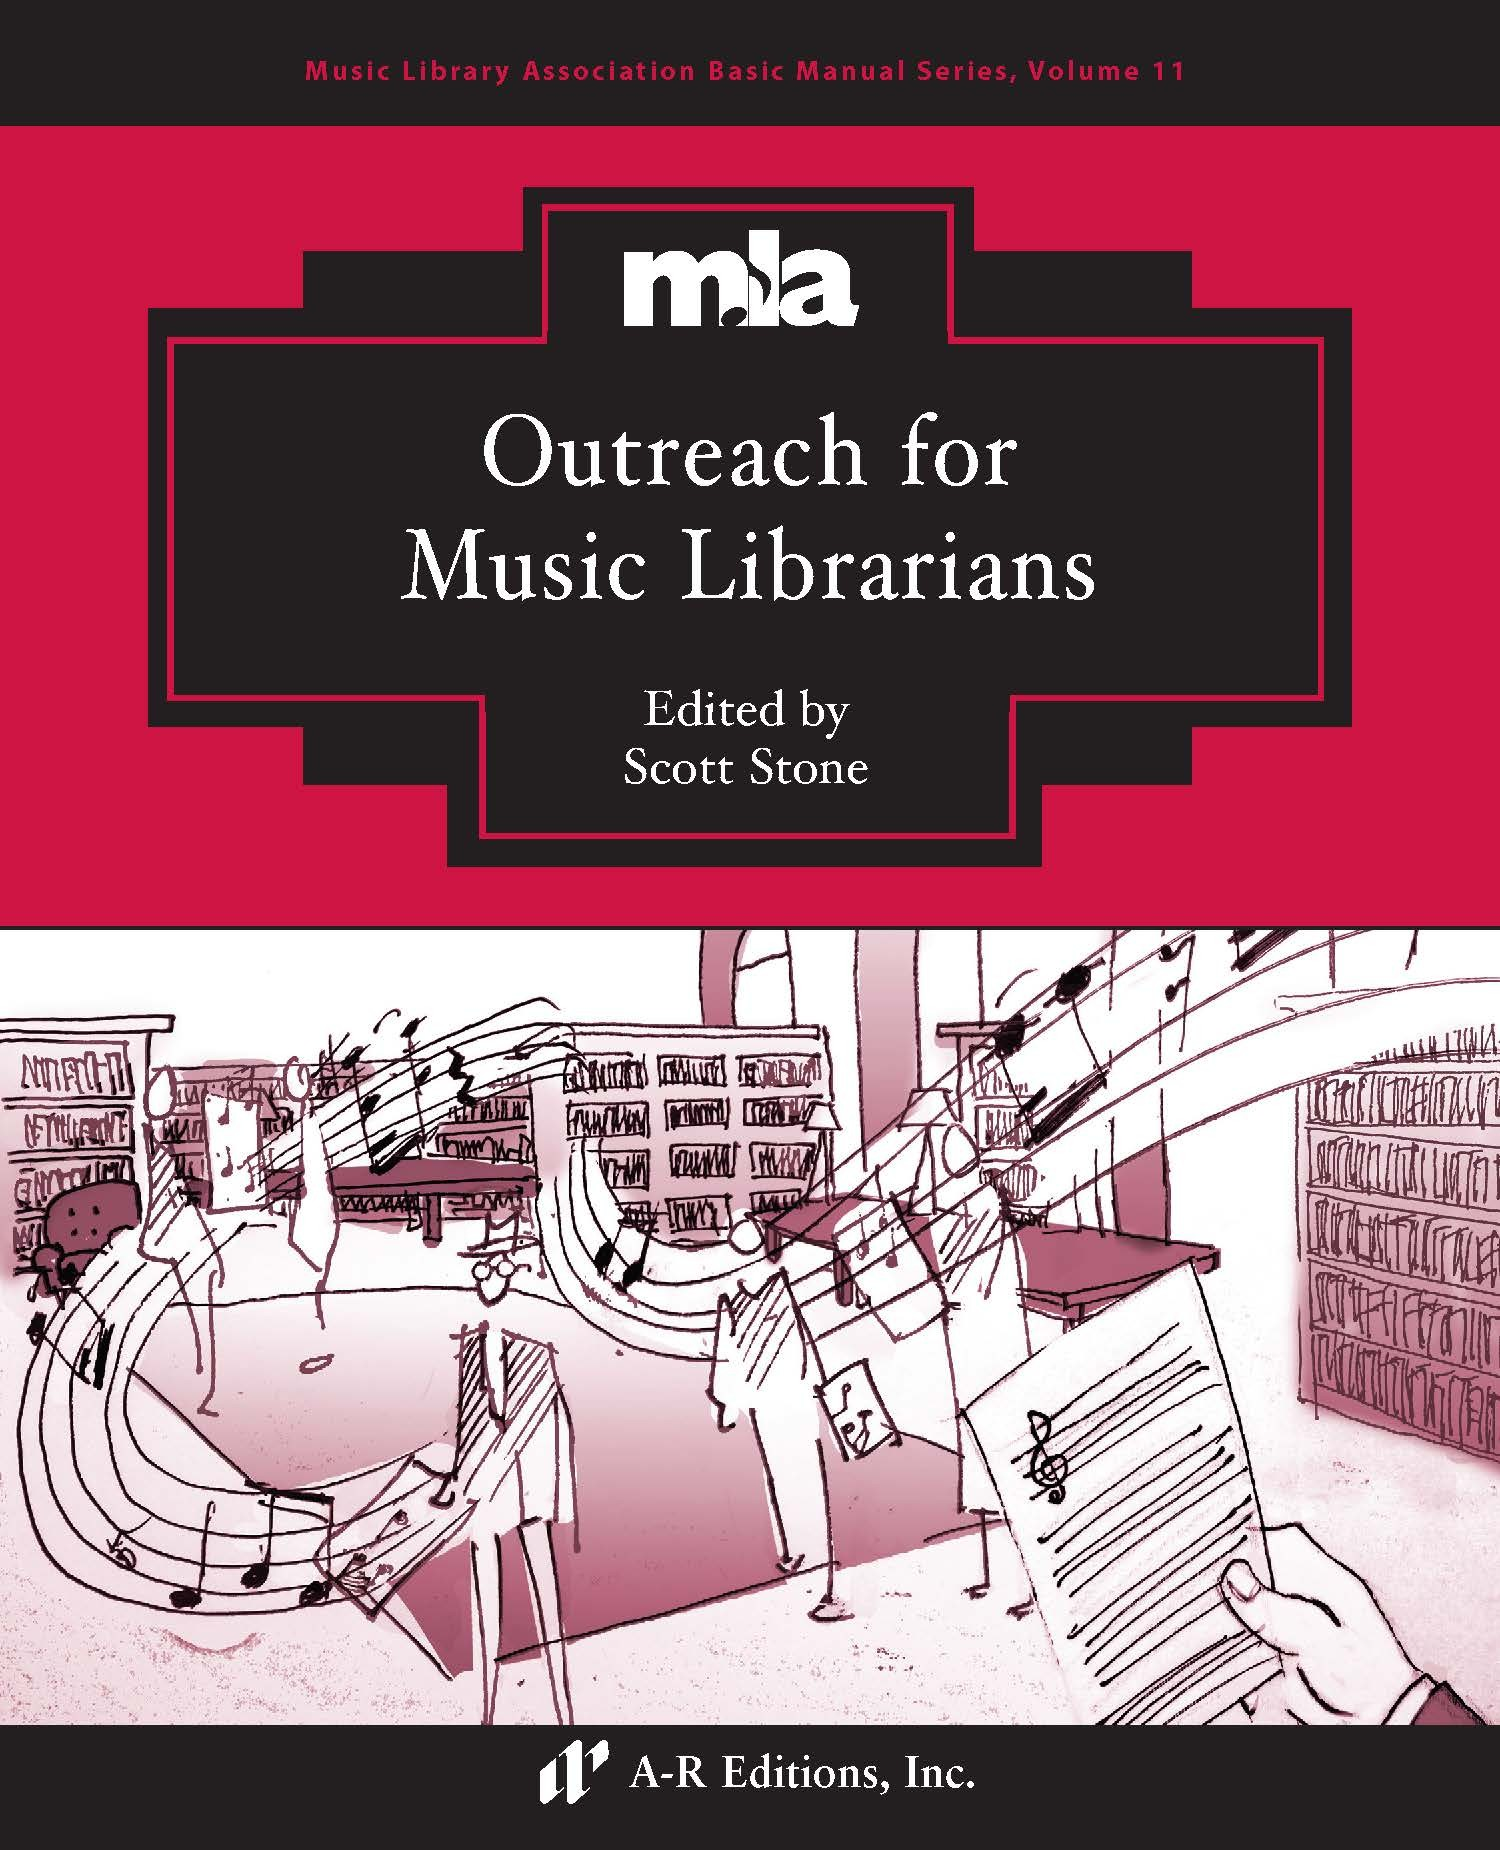 Stone, ed.: Outreach for Music Librarians